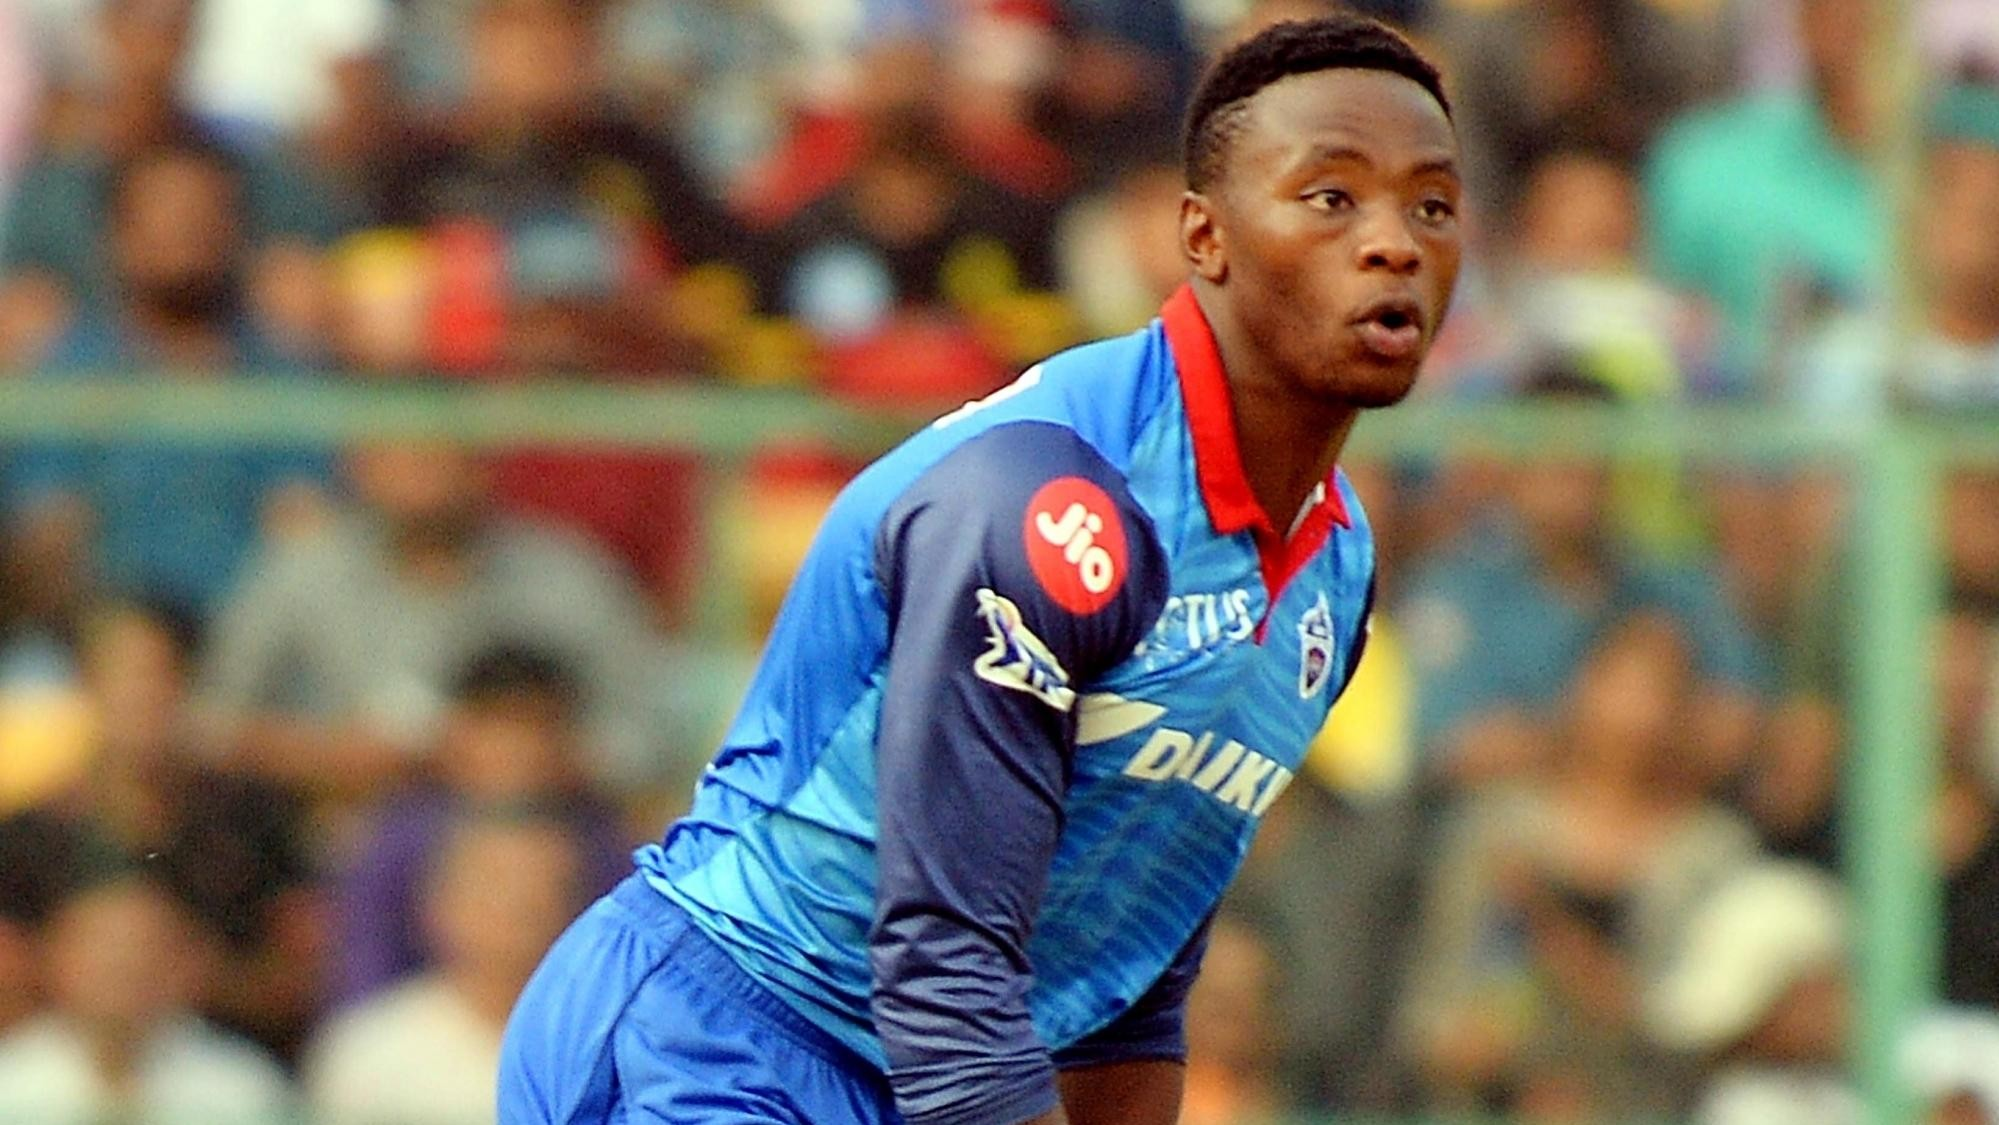 IPL 2020: Kagiso Rabada intent on regaining rhythm at training after extended break